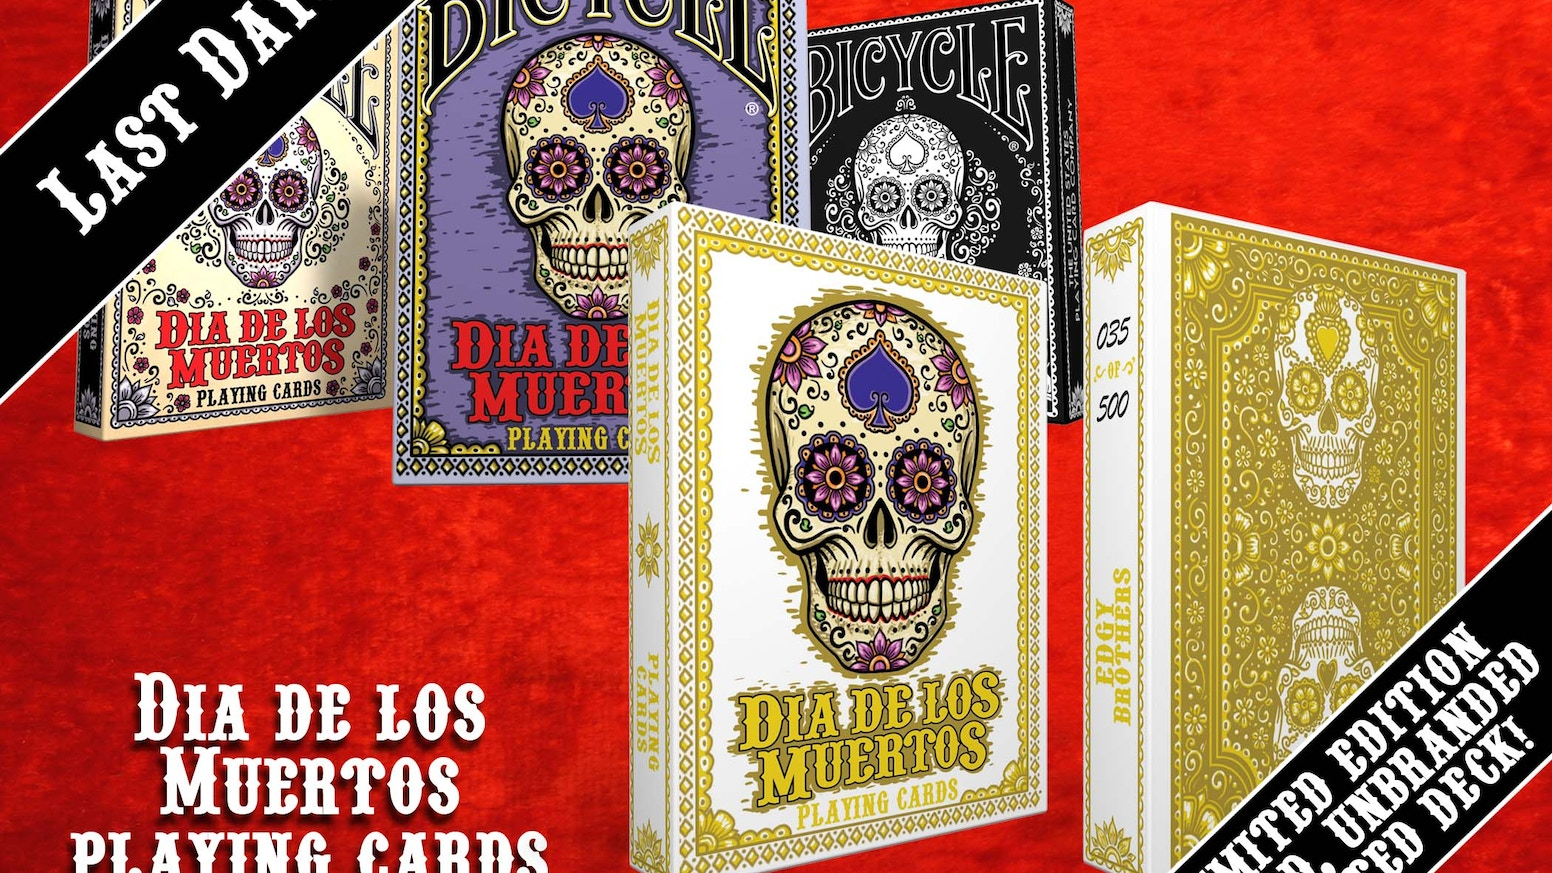 A Bicycle Playing Card Deck inspired by the art and traditions of Dia de Los Muertos.